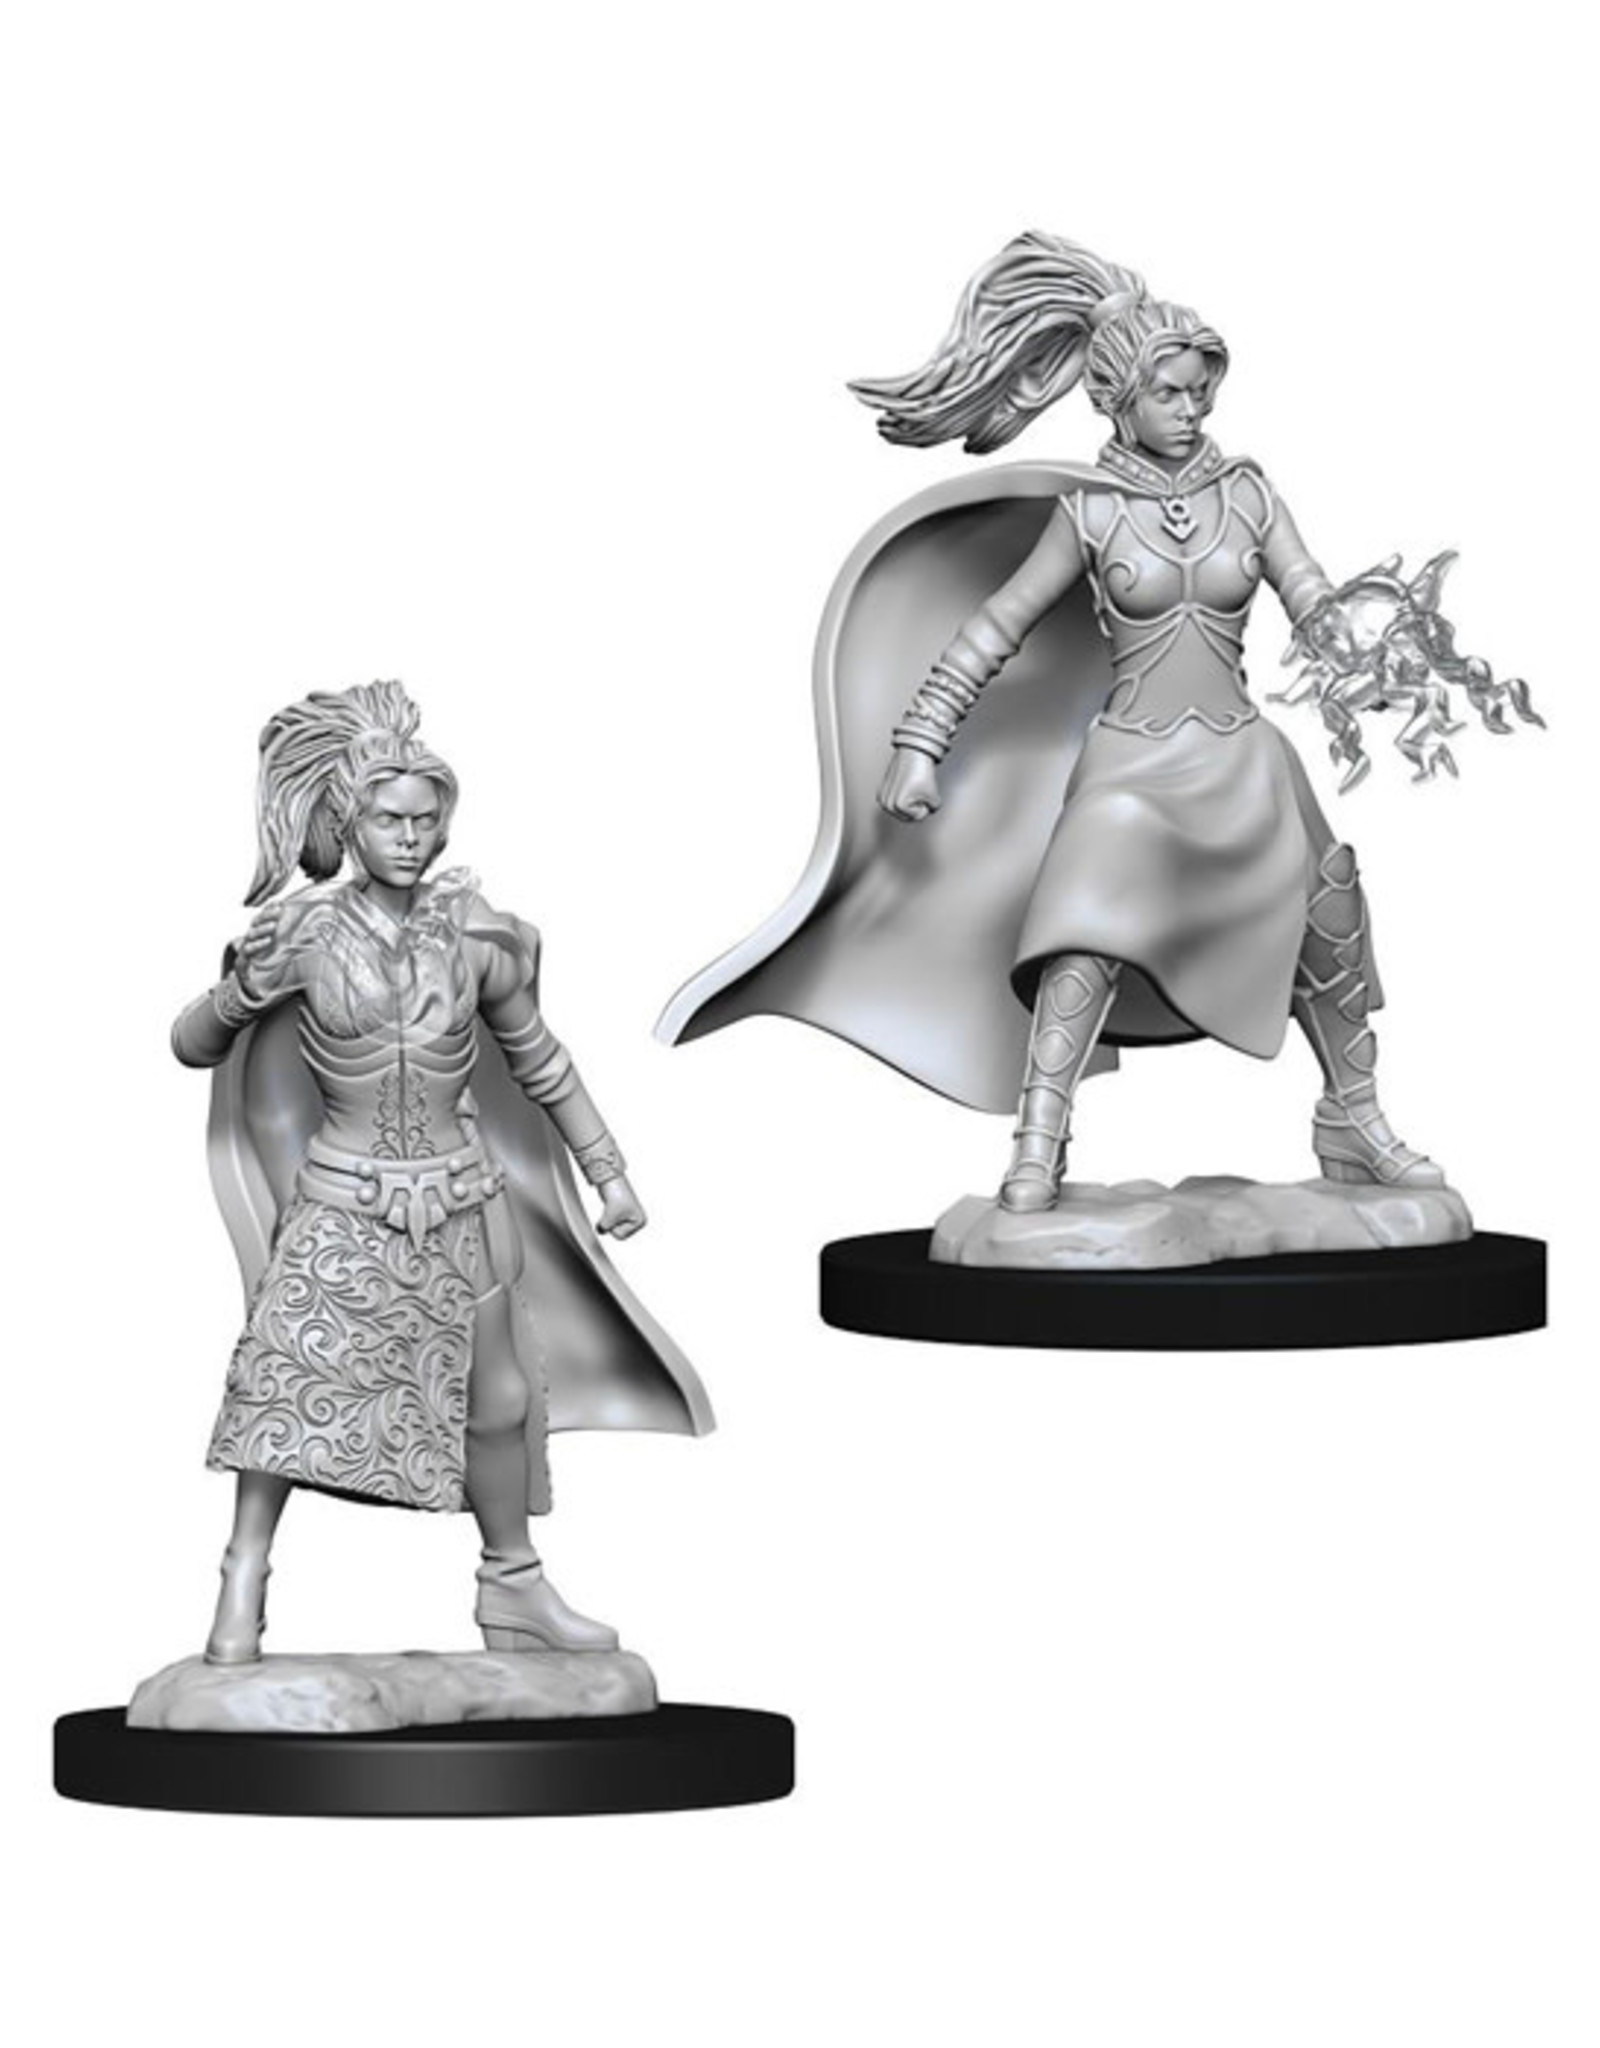 Dungeons & Dragons Dungeons & Dragons: Nolzur's - Human Female Sorcerer